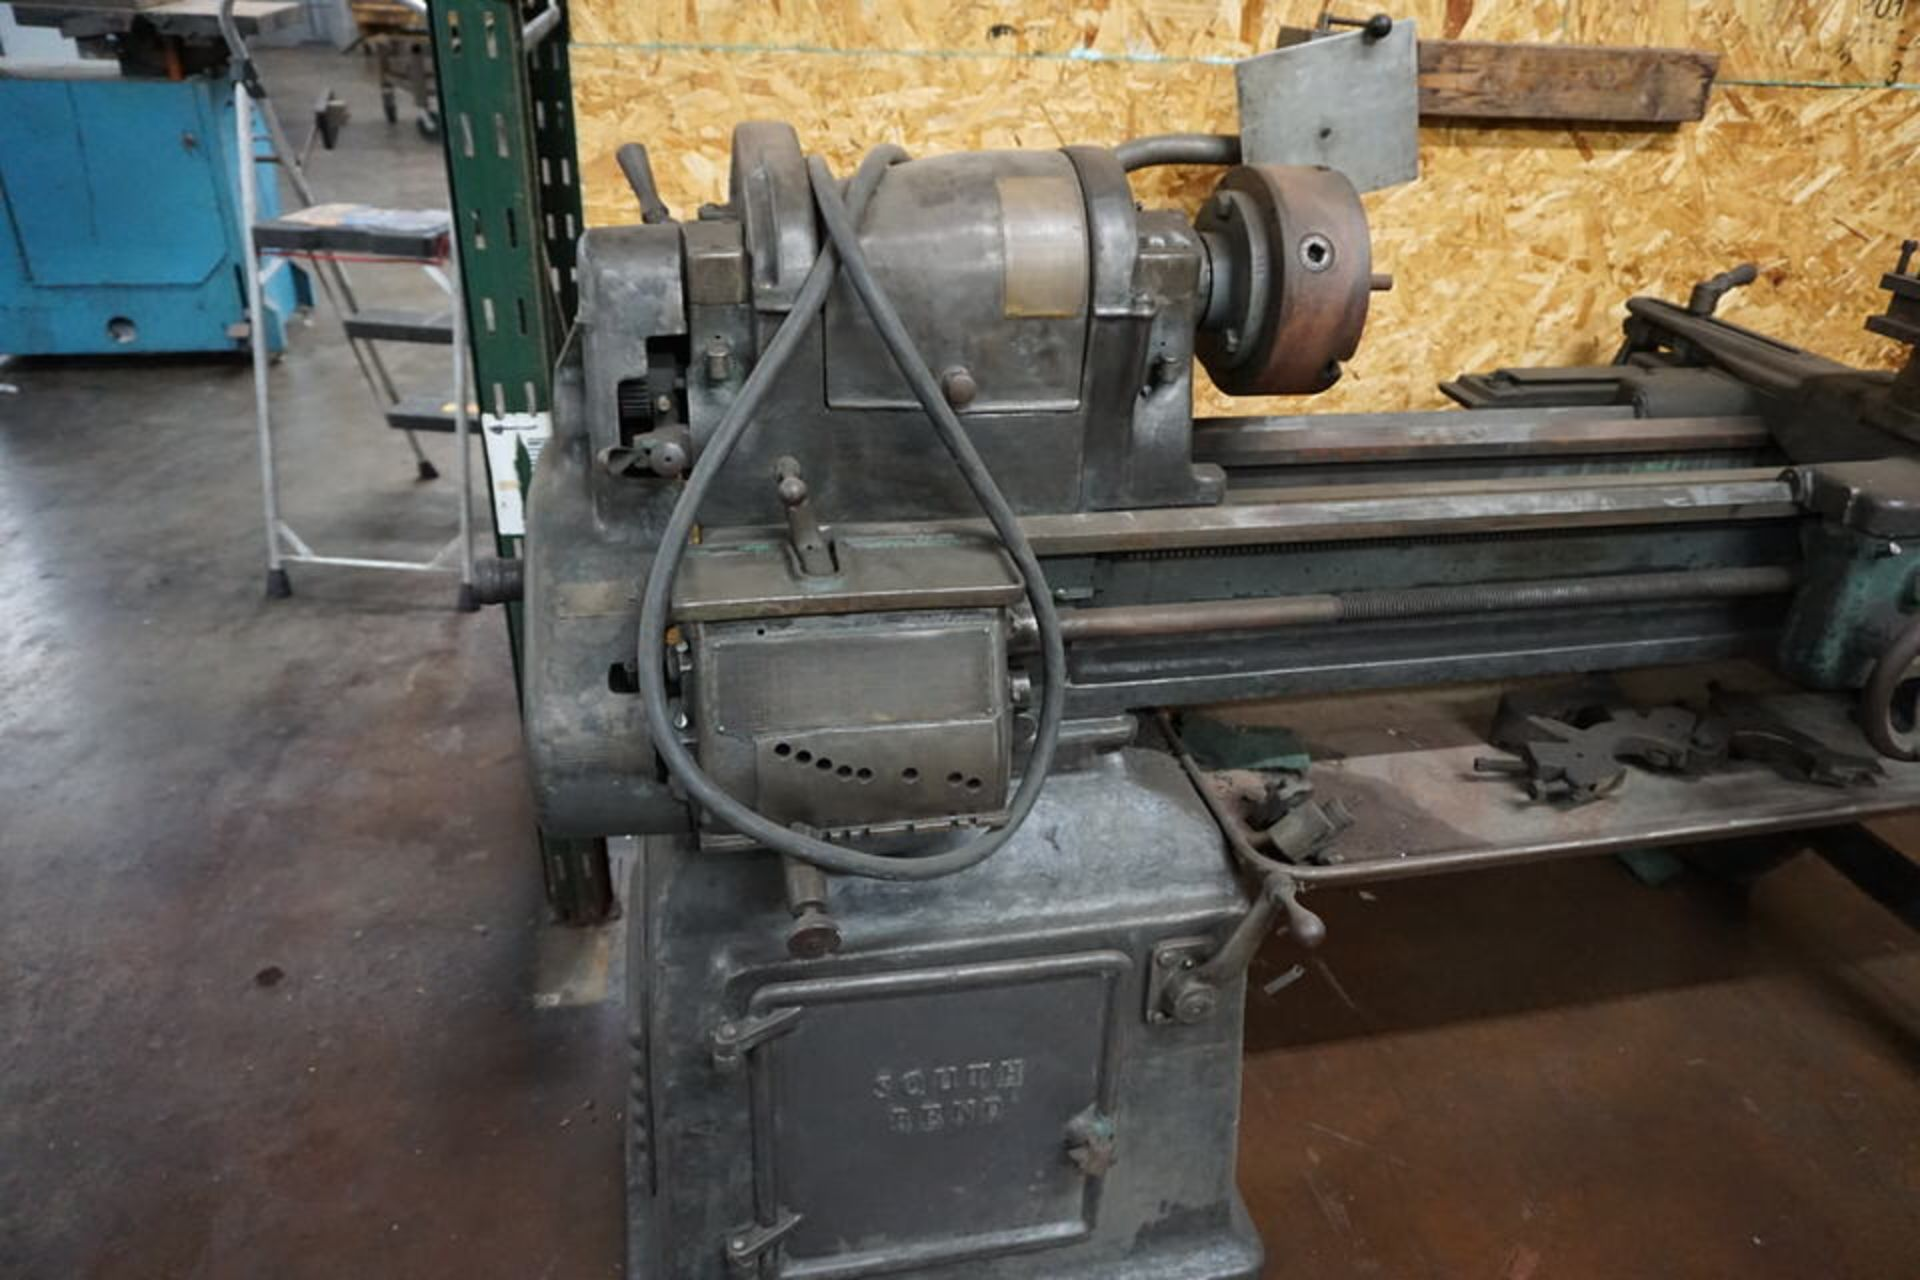 SOUTH BEND MANUAL LATHE W/ 3 JAW CHUCK, TOOPOST & TAILSTOCK - Image 3 of 5